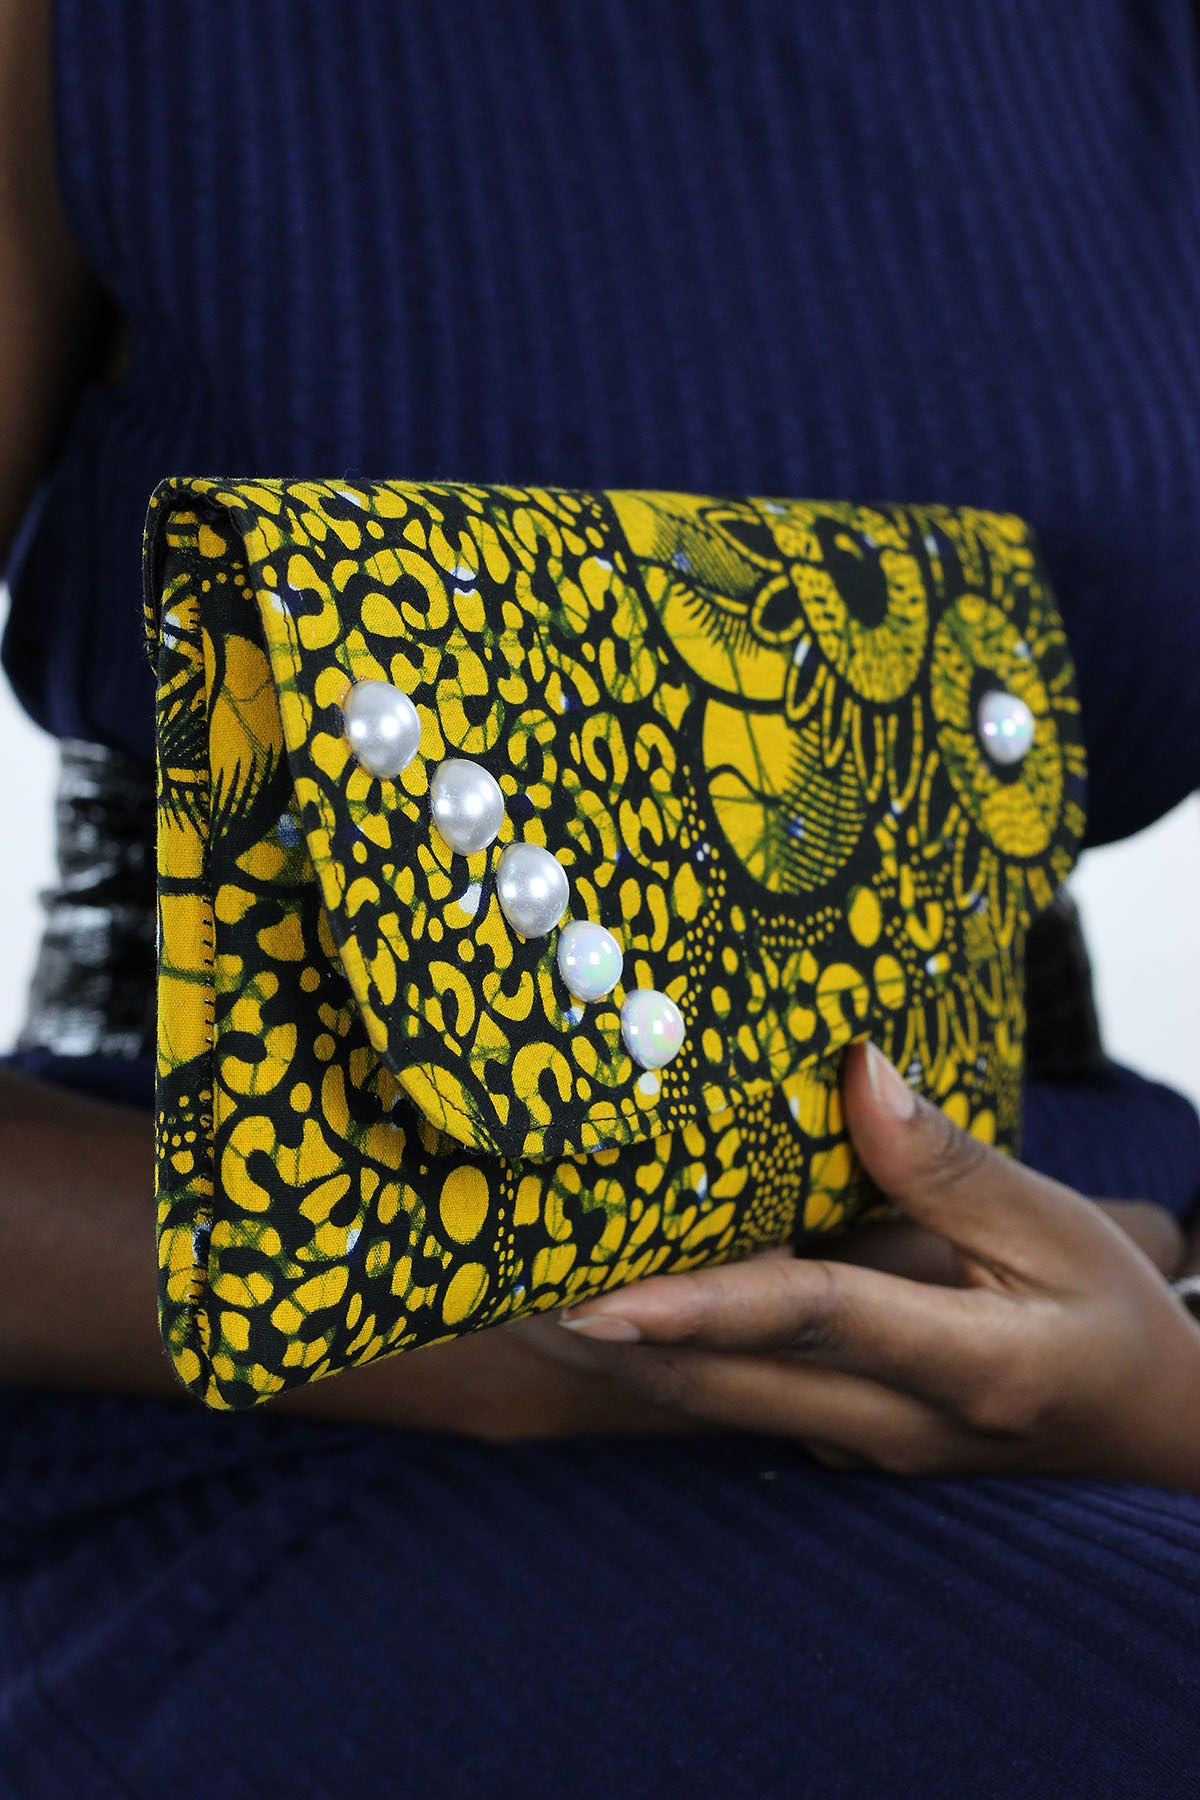 African Print Clutch Pearl Purse- Yellow/Black Floral Print - Africas Closet